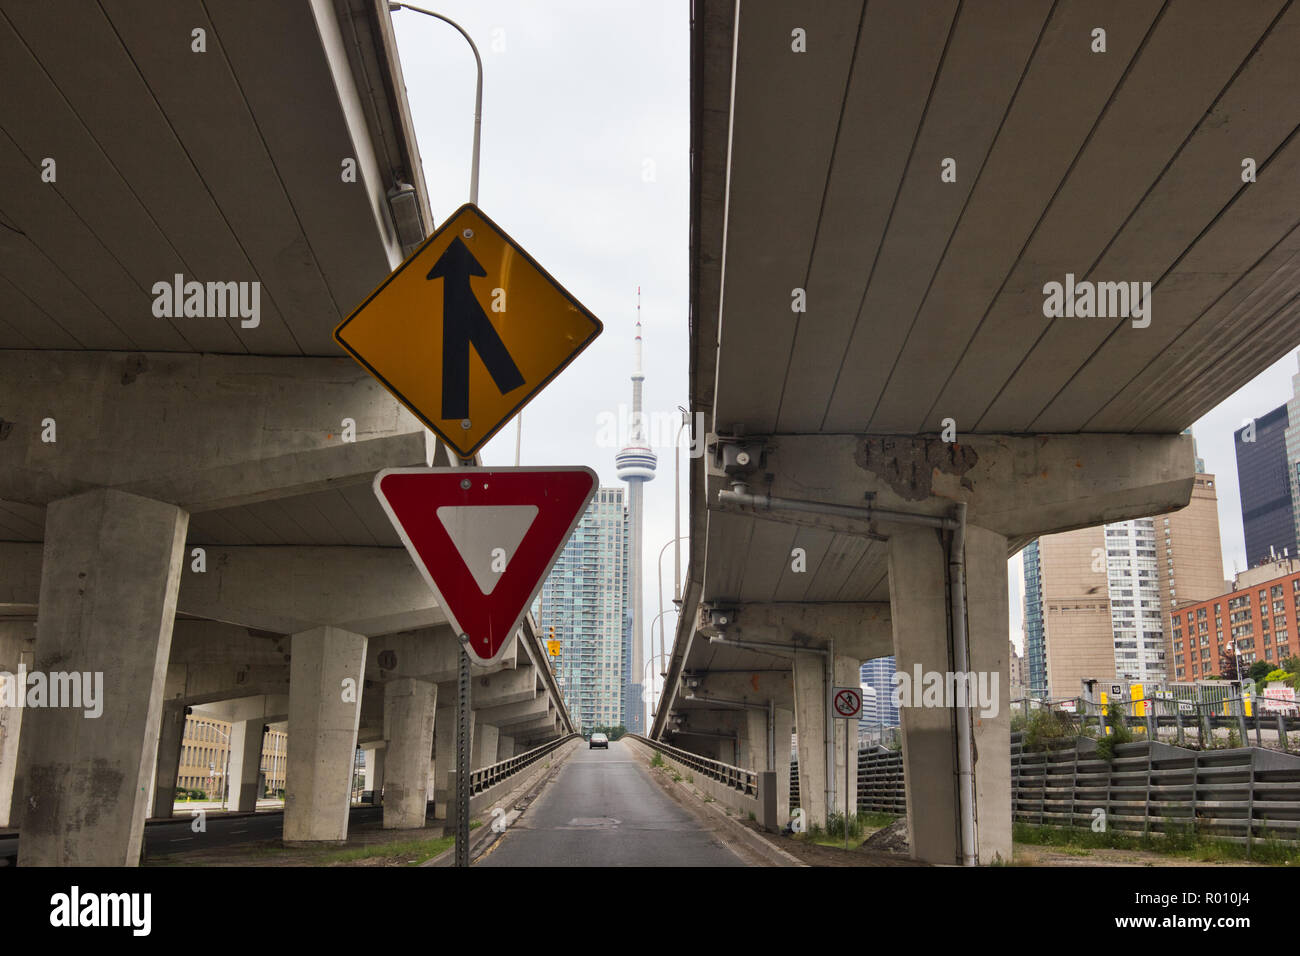 View of CN Tower from between two flyovers, Toronto, Ontario, Canada - Stock Image